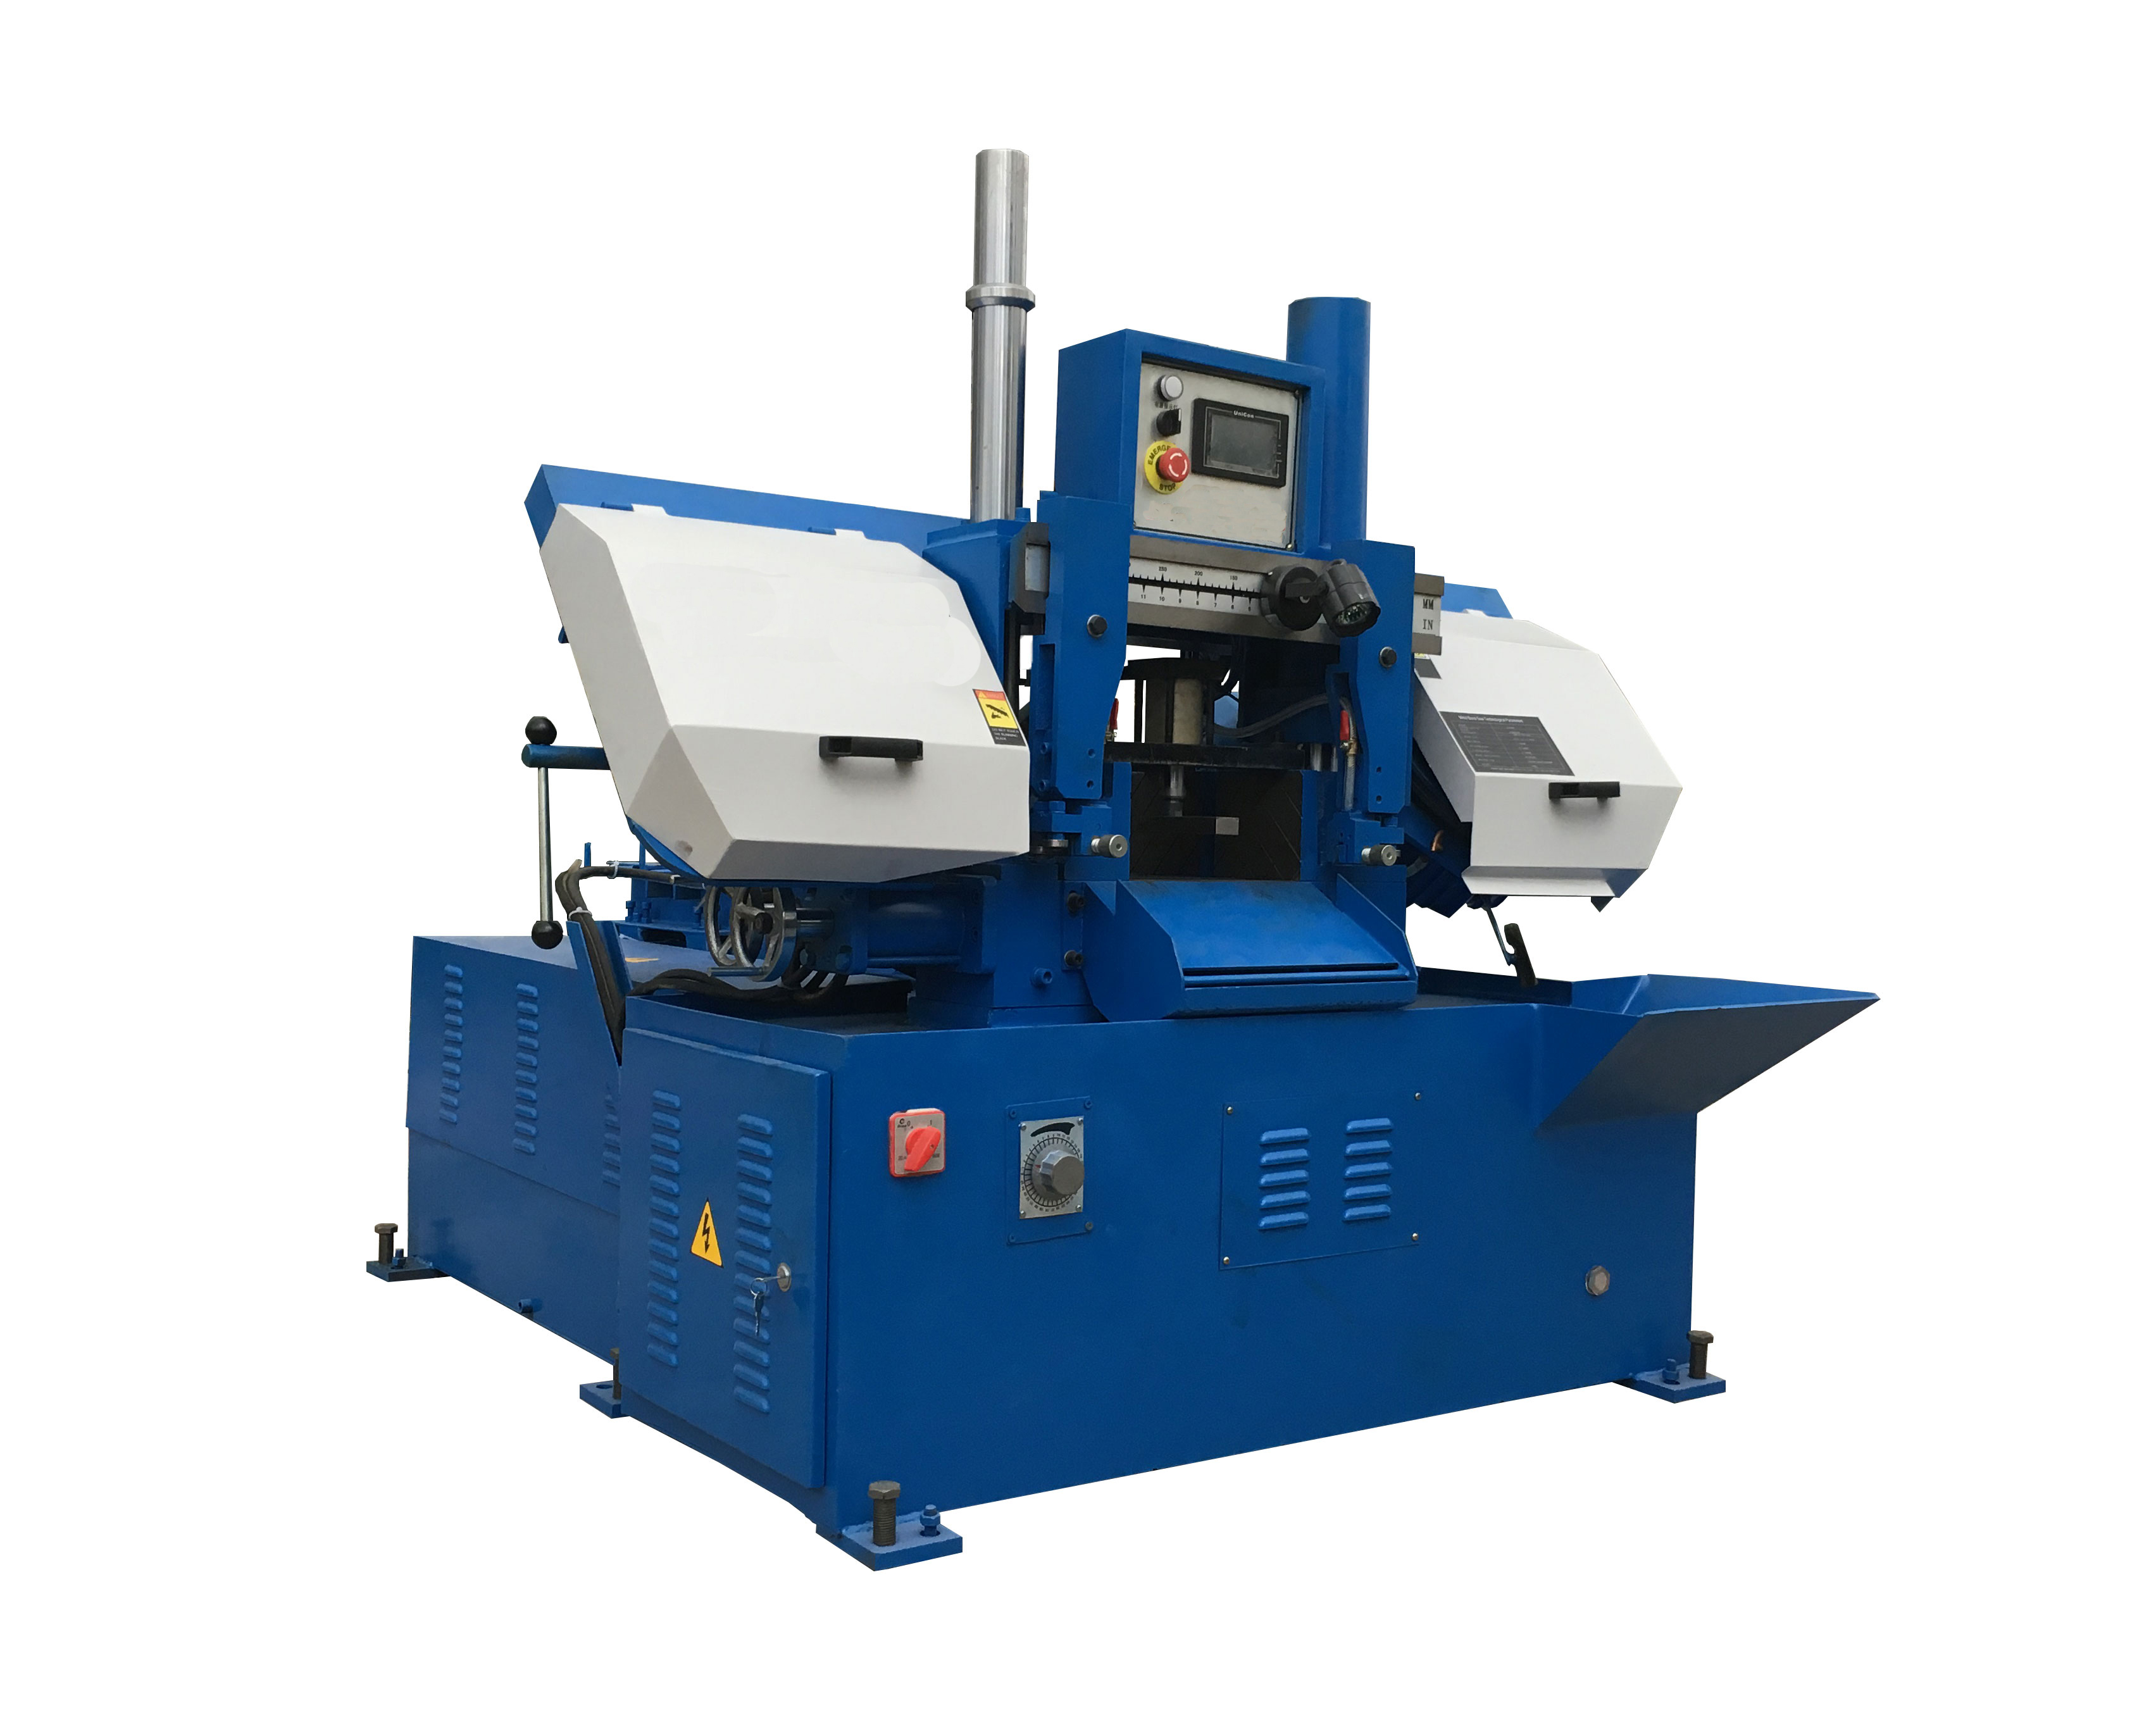 Automatic auto feeding device GS260 Cutting Metal Bandsaw Price